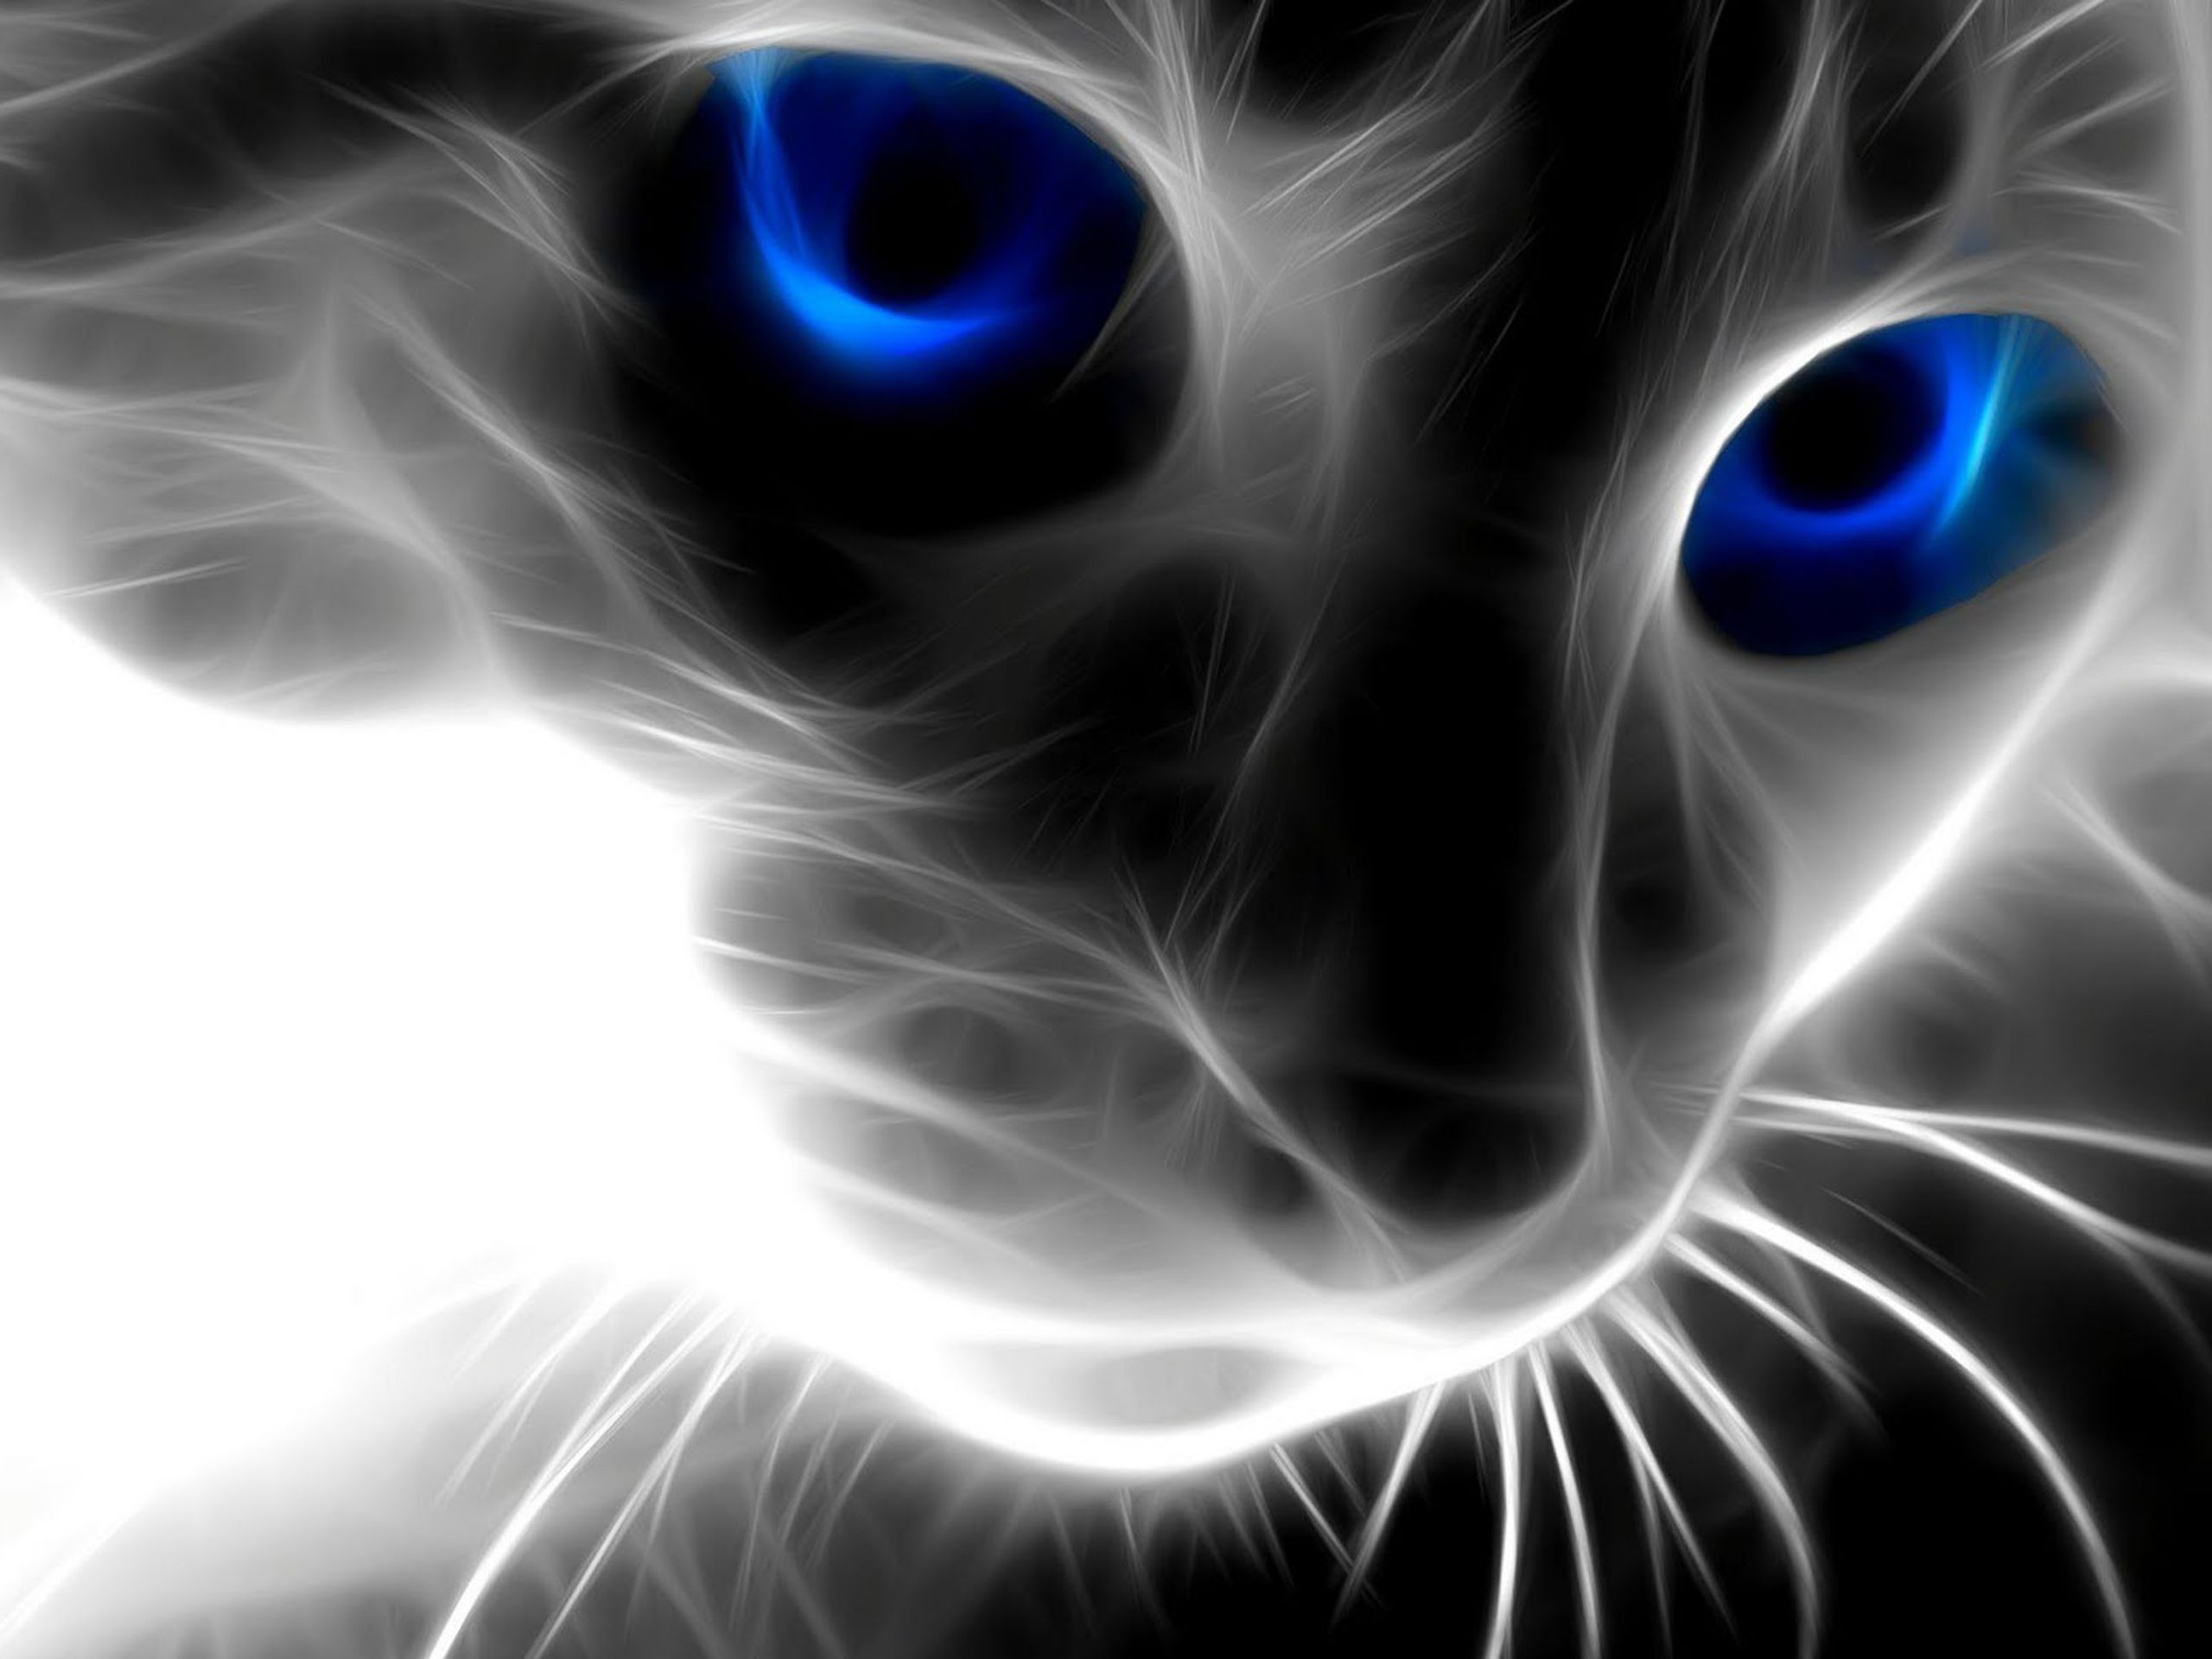 Glowing Cat Cat With Blue Eyes Cat Wallpaper Wild Cats